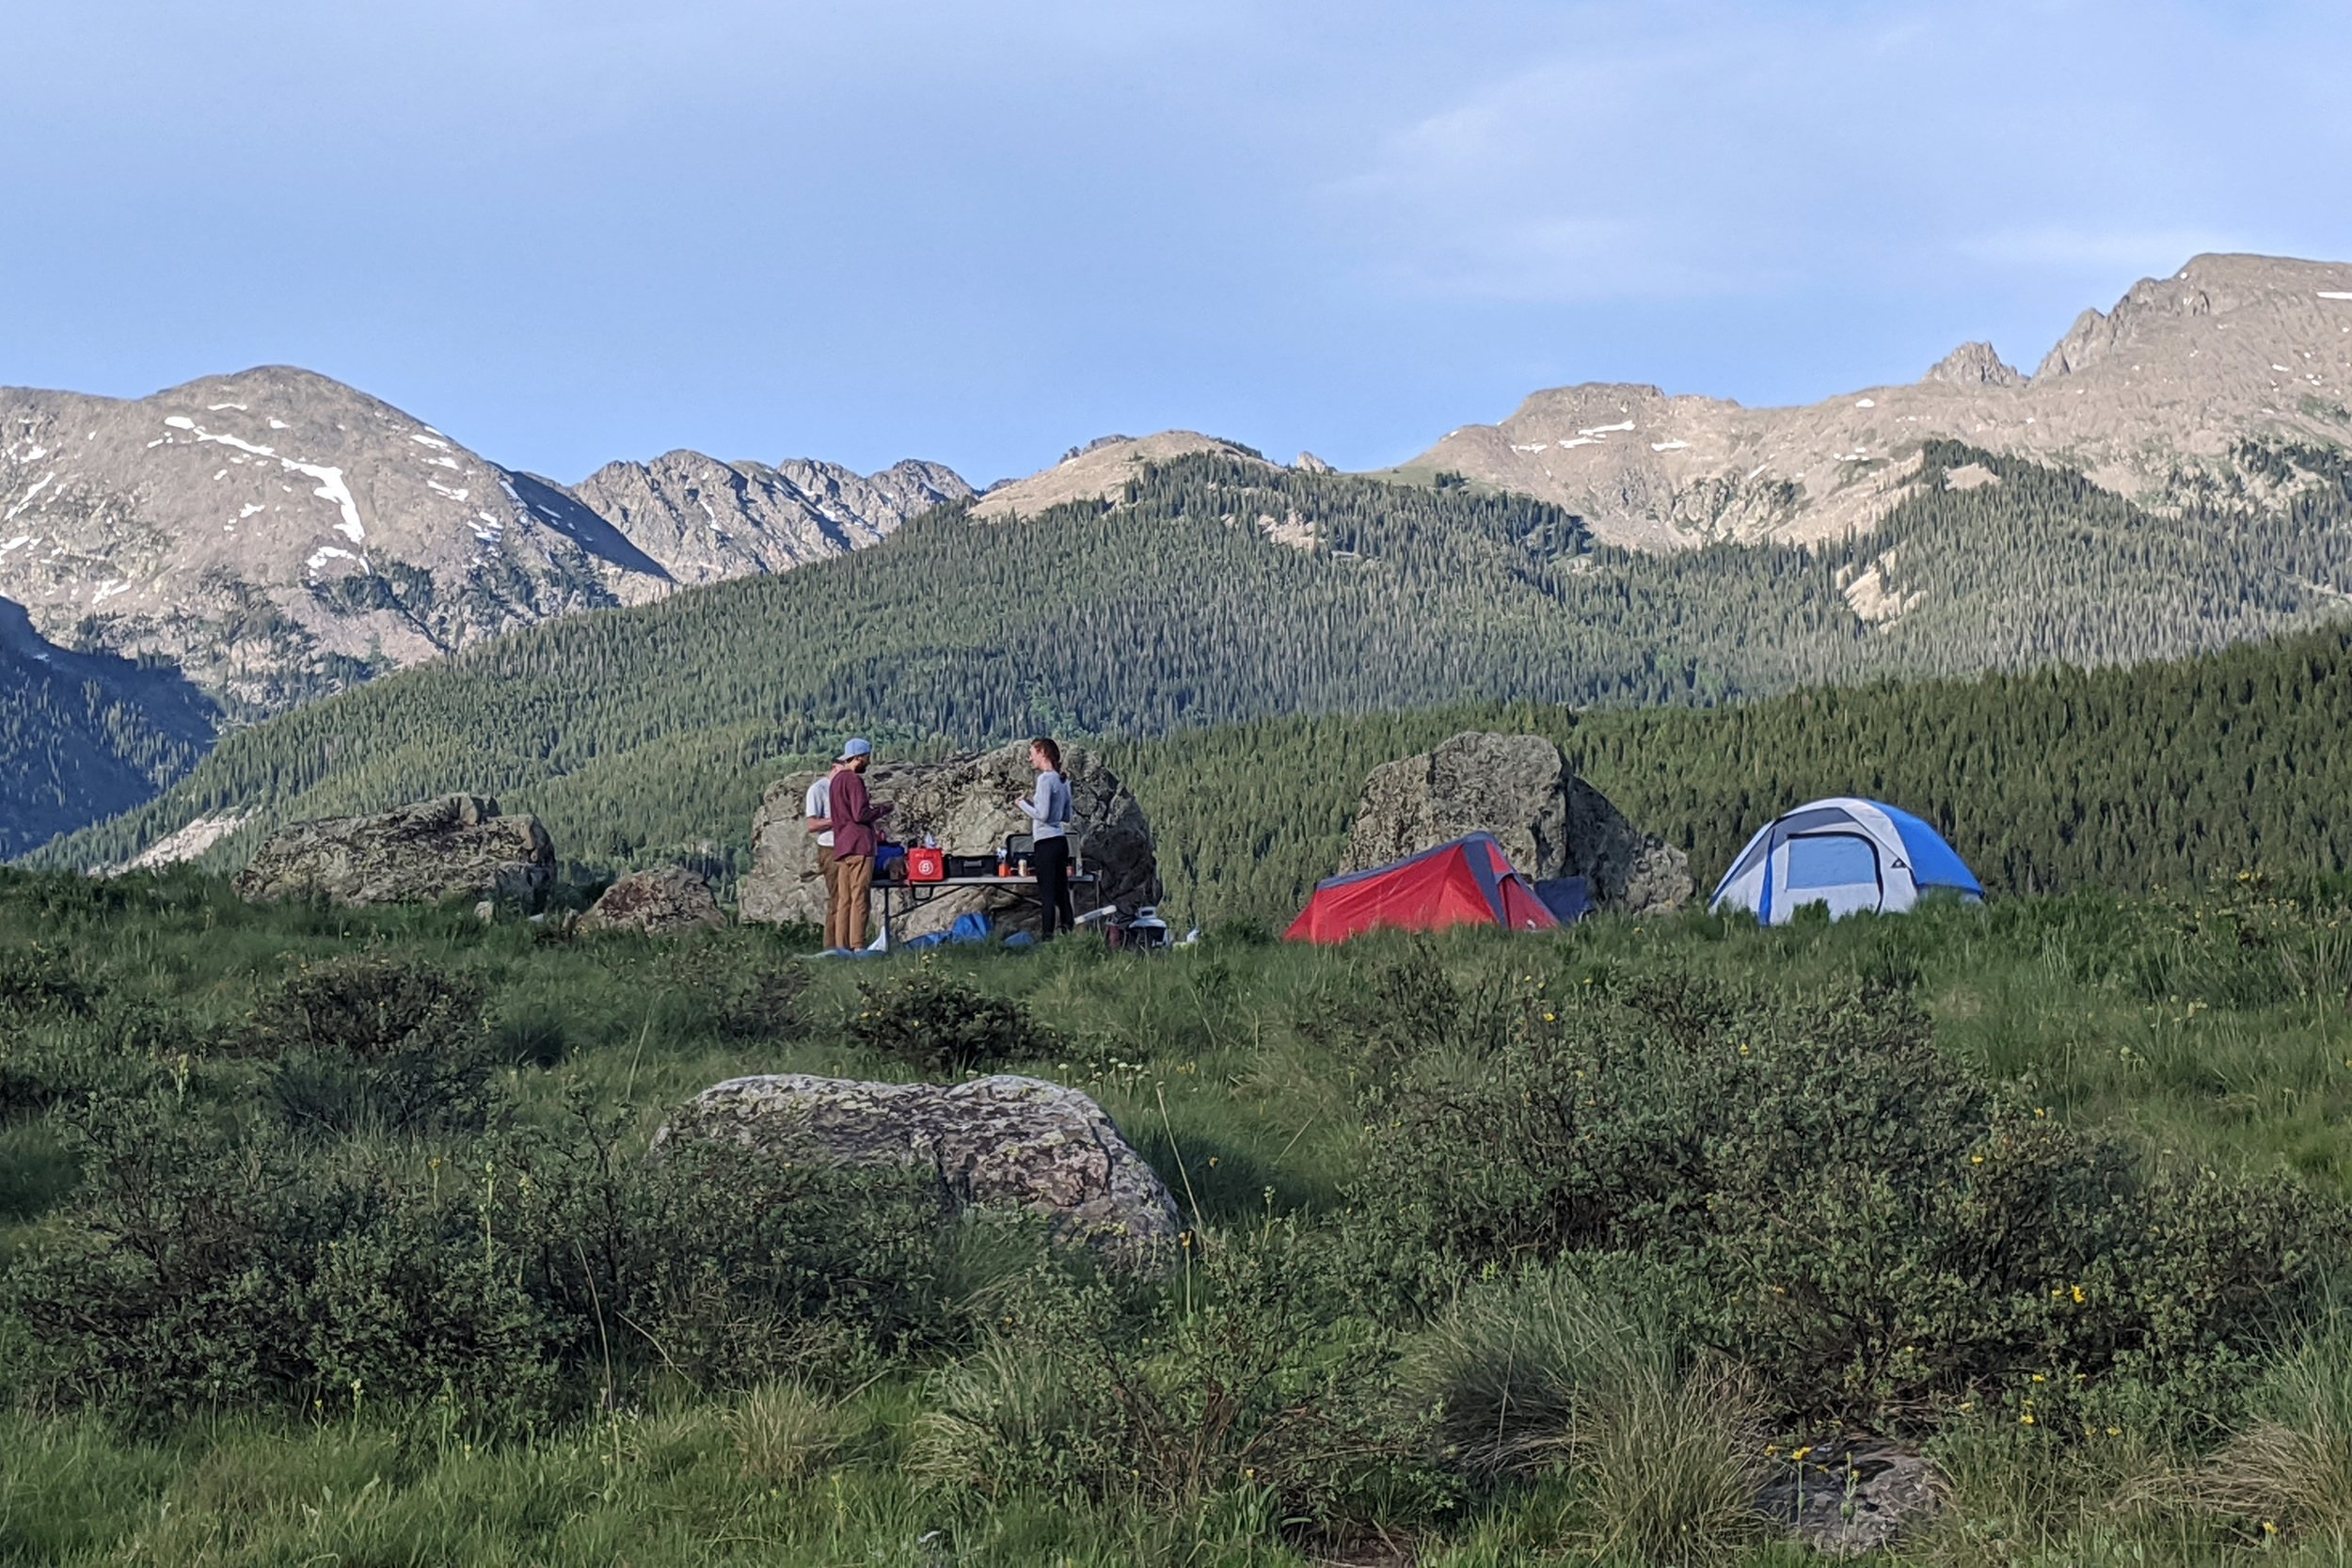 News Analysis: The demise of dispersed camping thumbnail